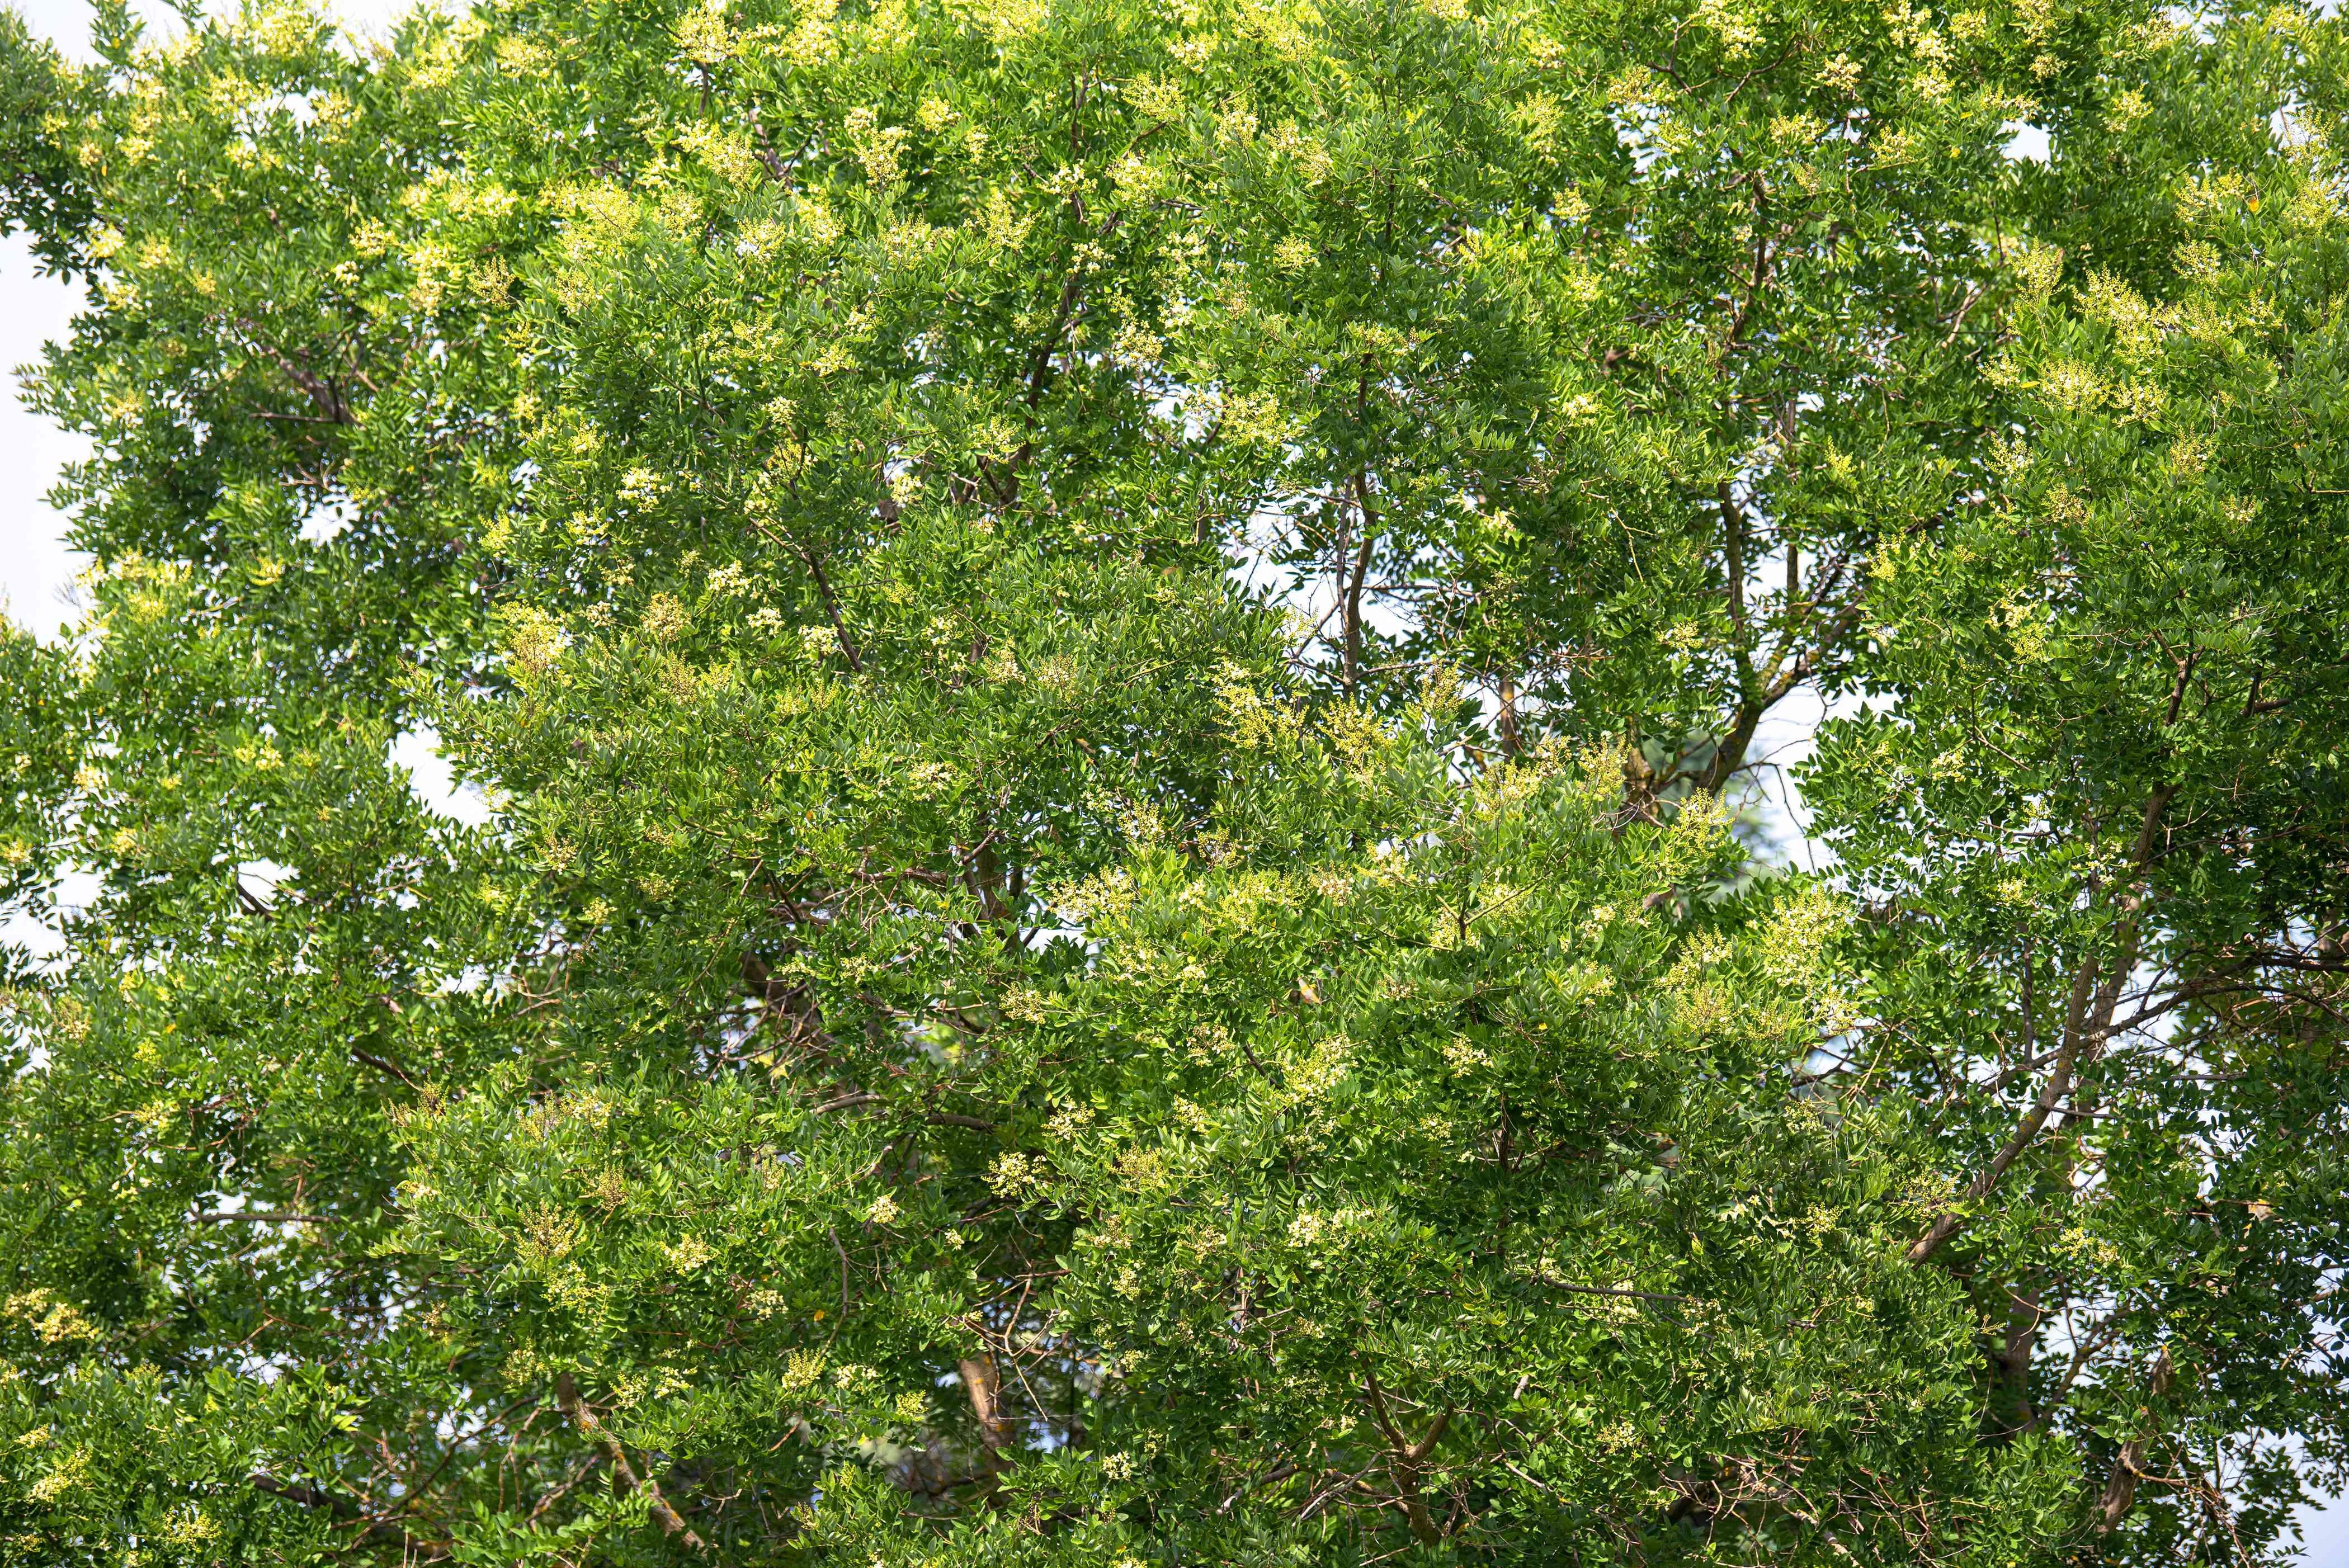 Japanese pagoda tree branches with bright green leaves and yellow flowers